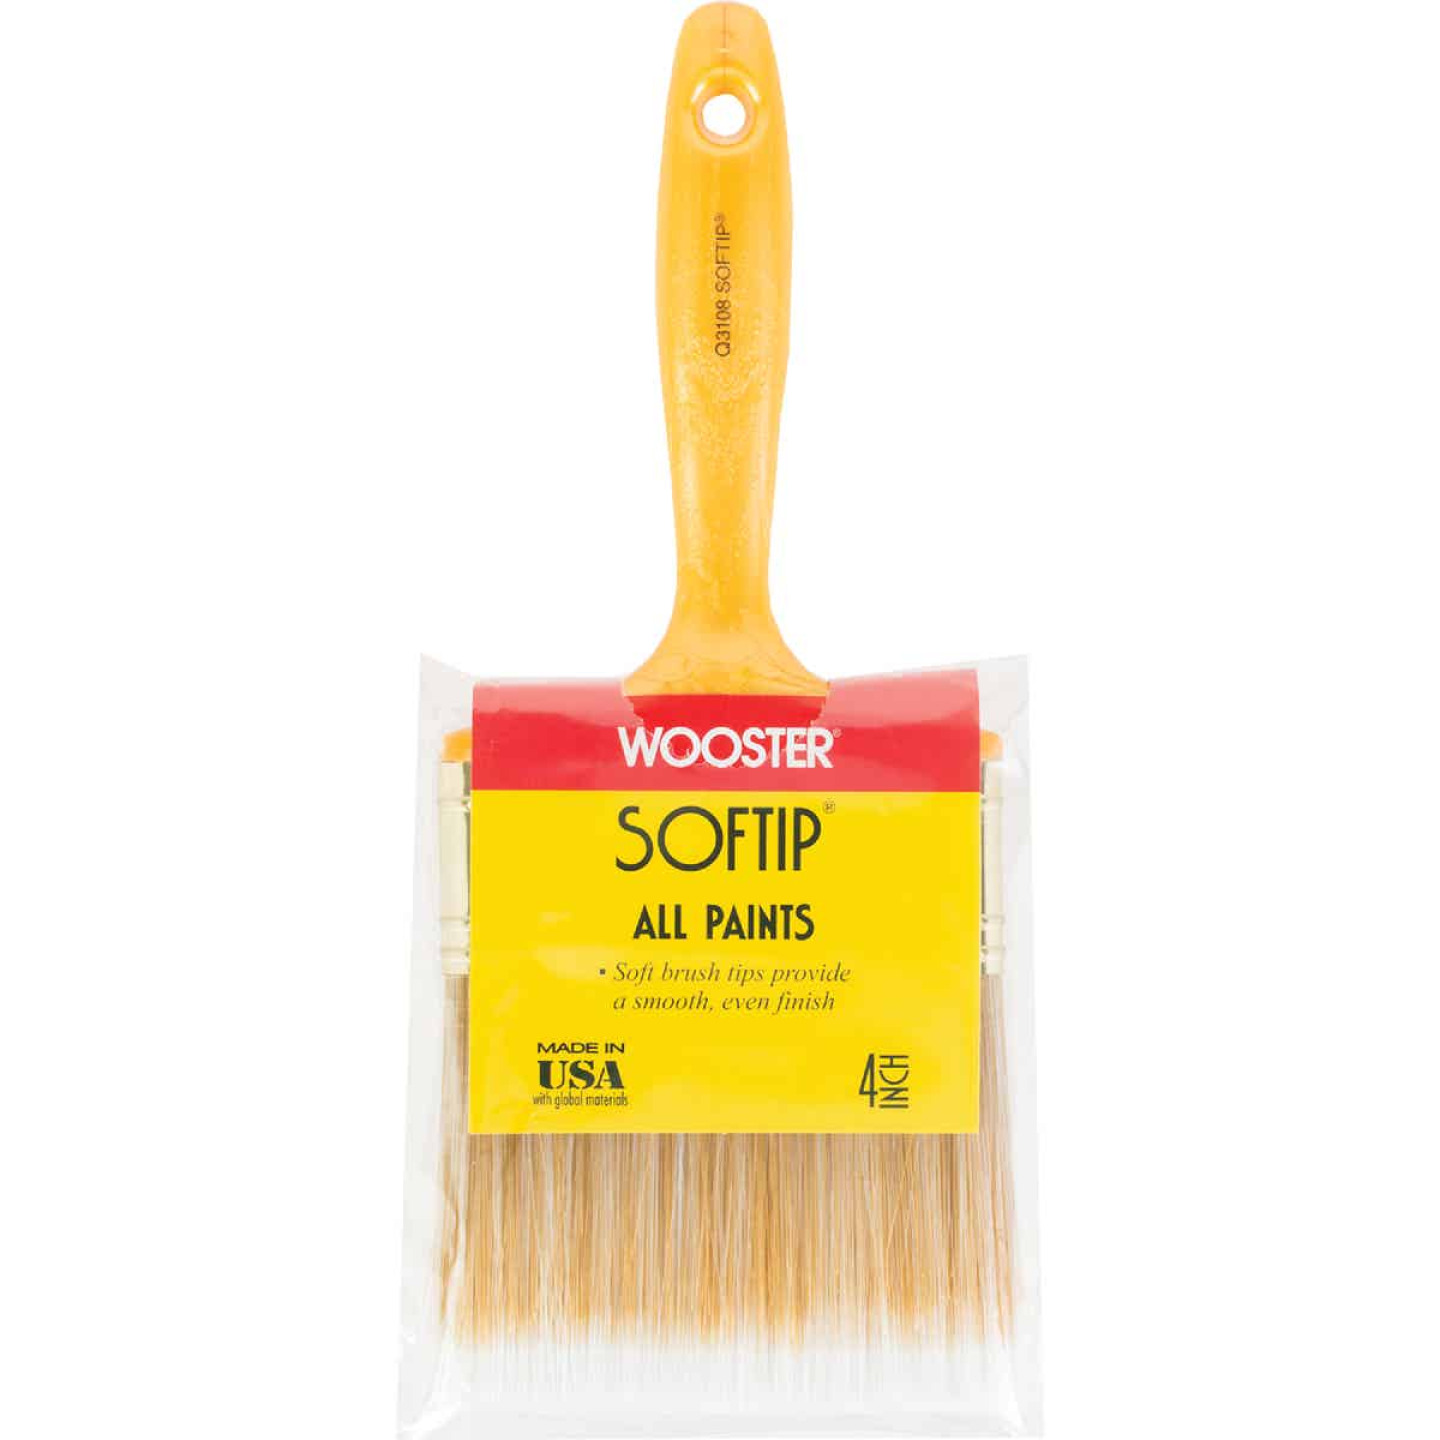 Wooster Softip 4 In. Flat Wall Paint Brush Image 1